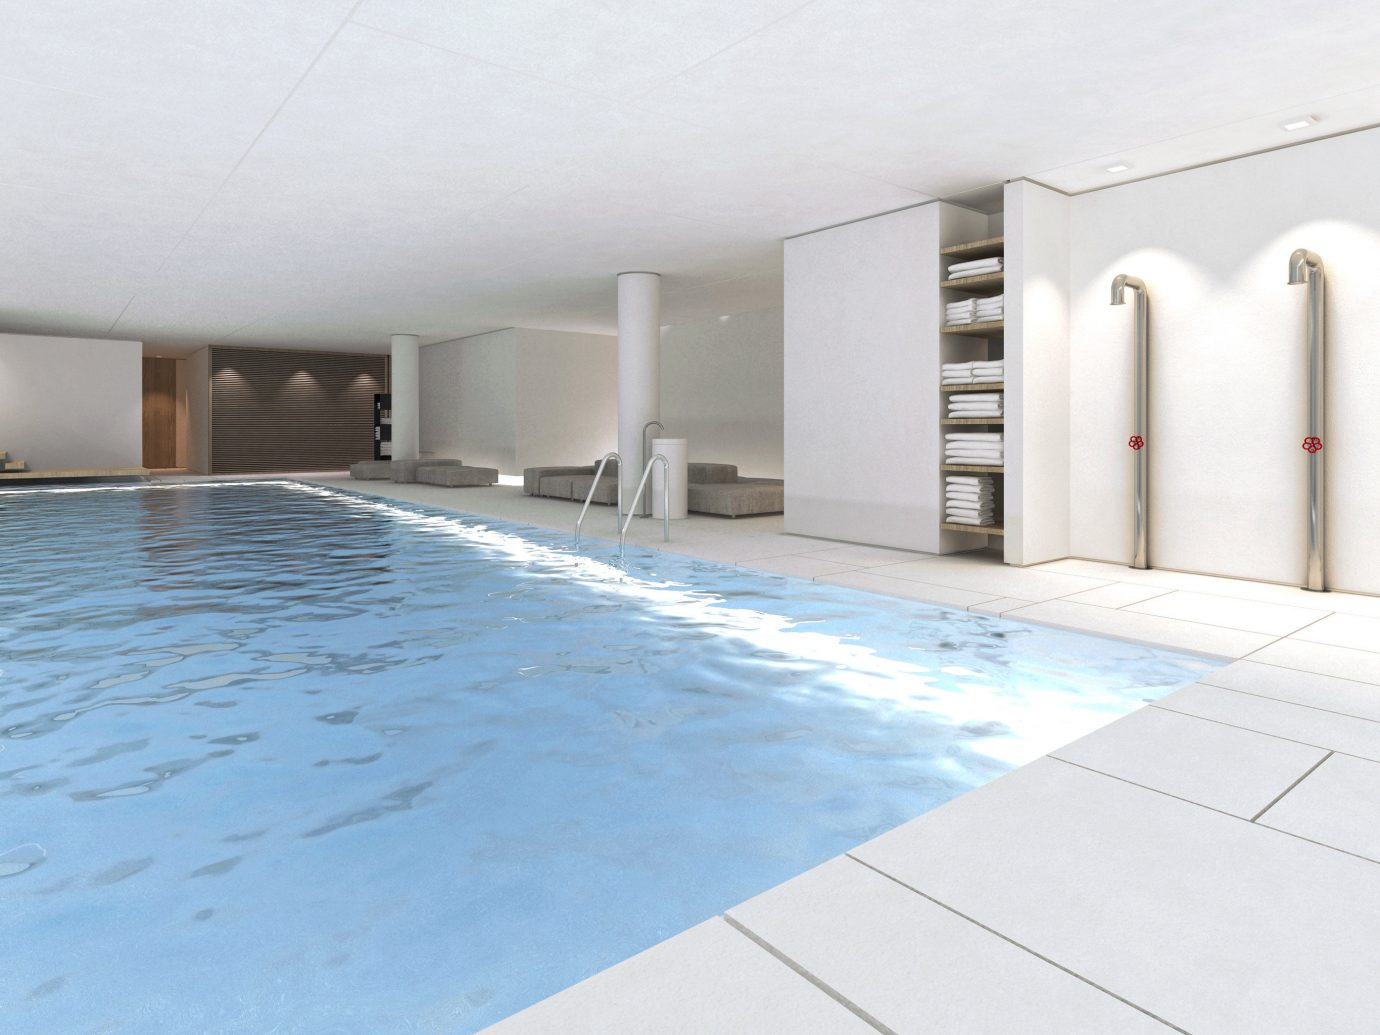 Amsterdam Hip Hotels Modern Pool The Netherlands indoor wall property floor ceiling flooring Architecture swimming pool daylighting real estate interior design professional facade estate